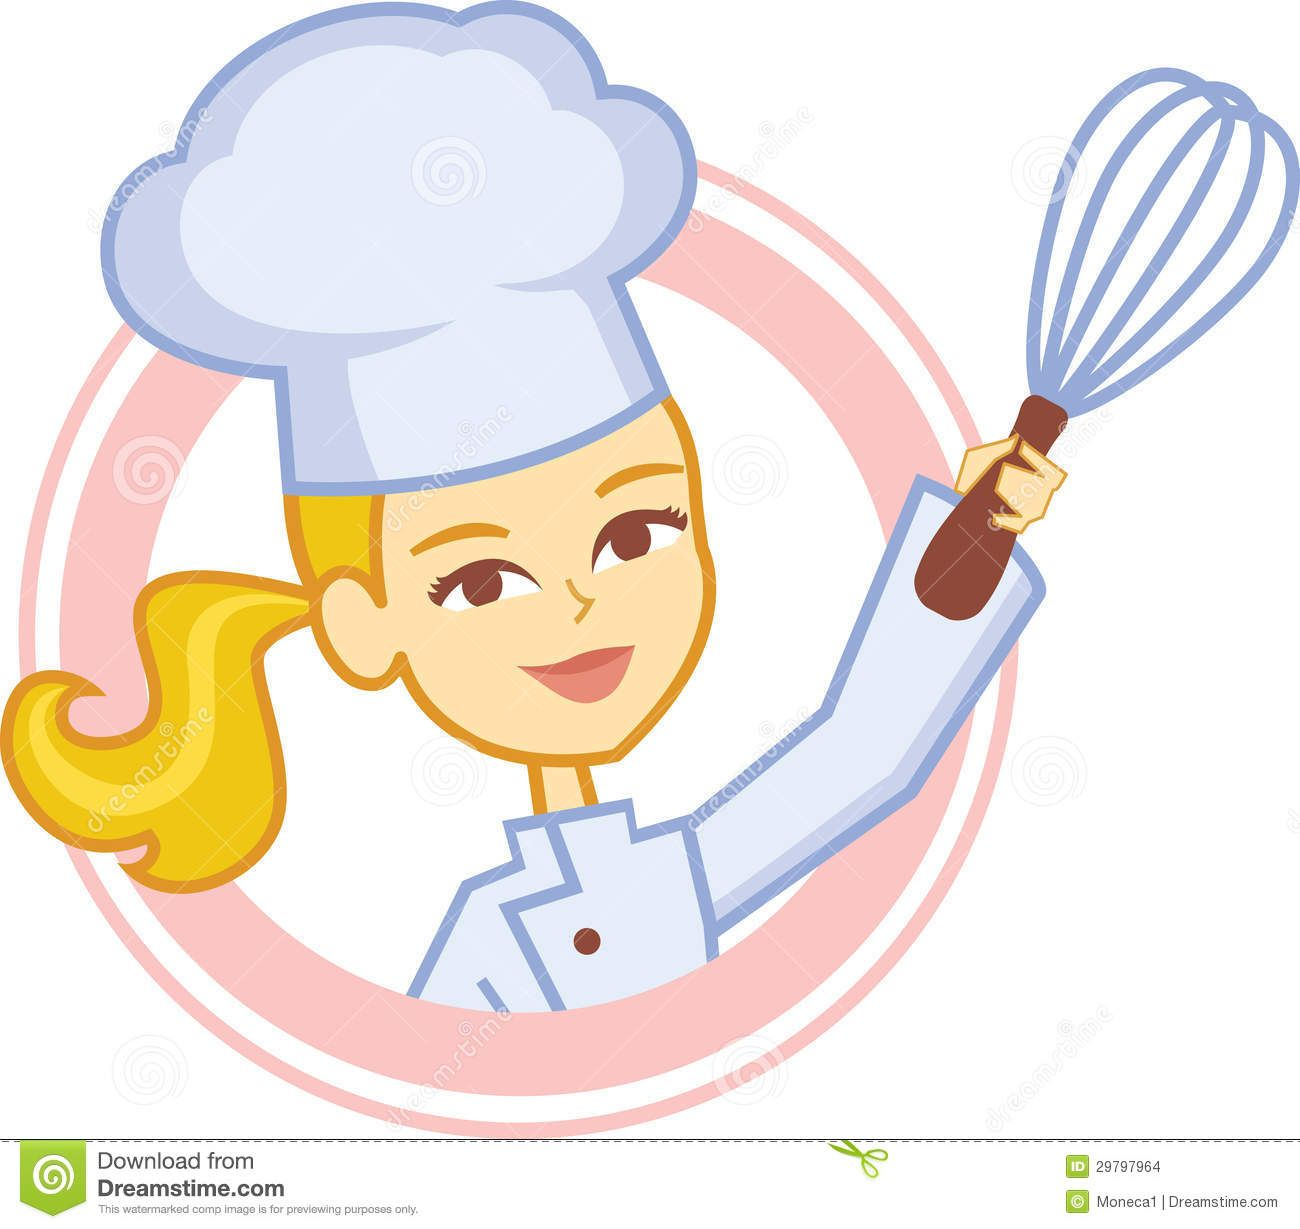 girl chef clipart google search ilustraci n no 2 dibujo rh pinterest ph chef clipart images chef clipart png